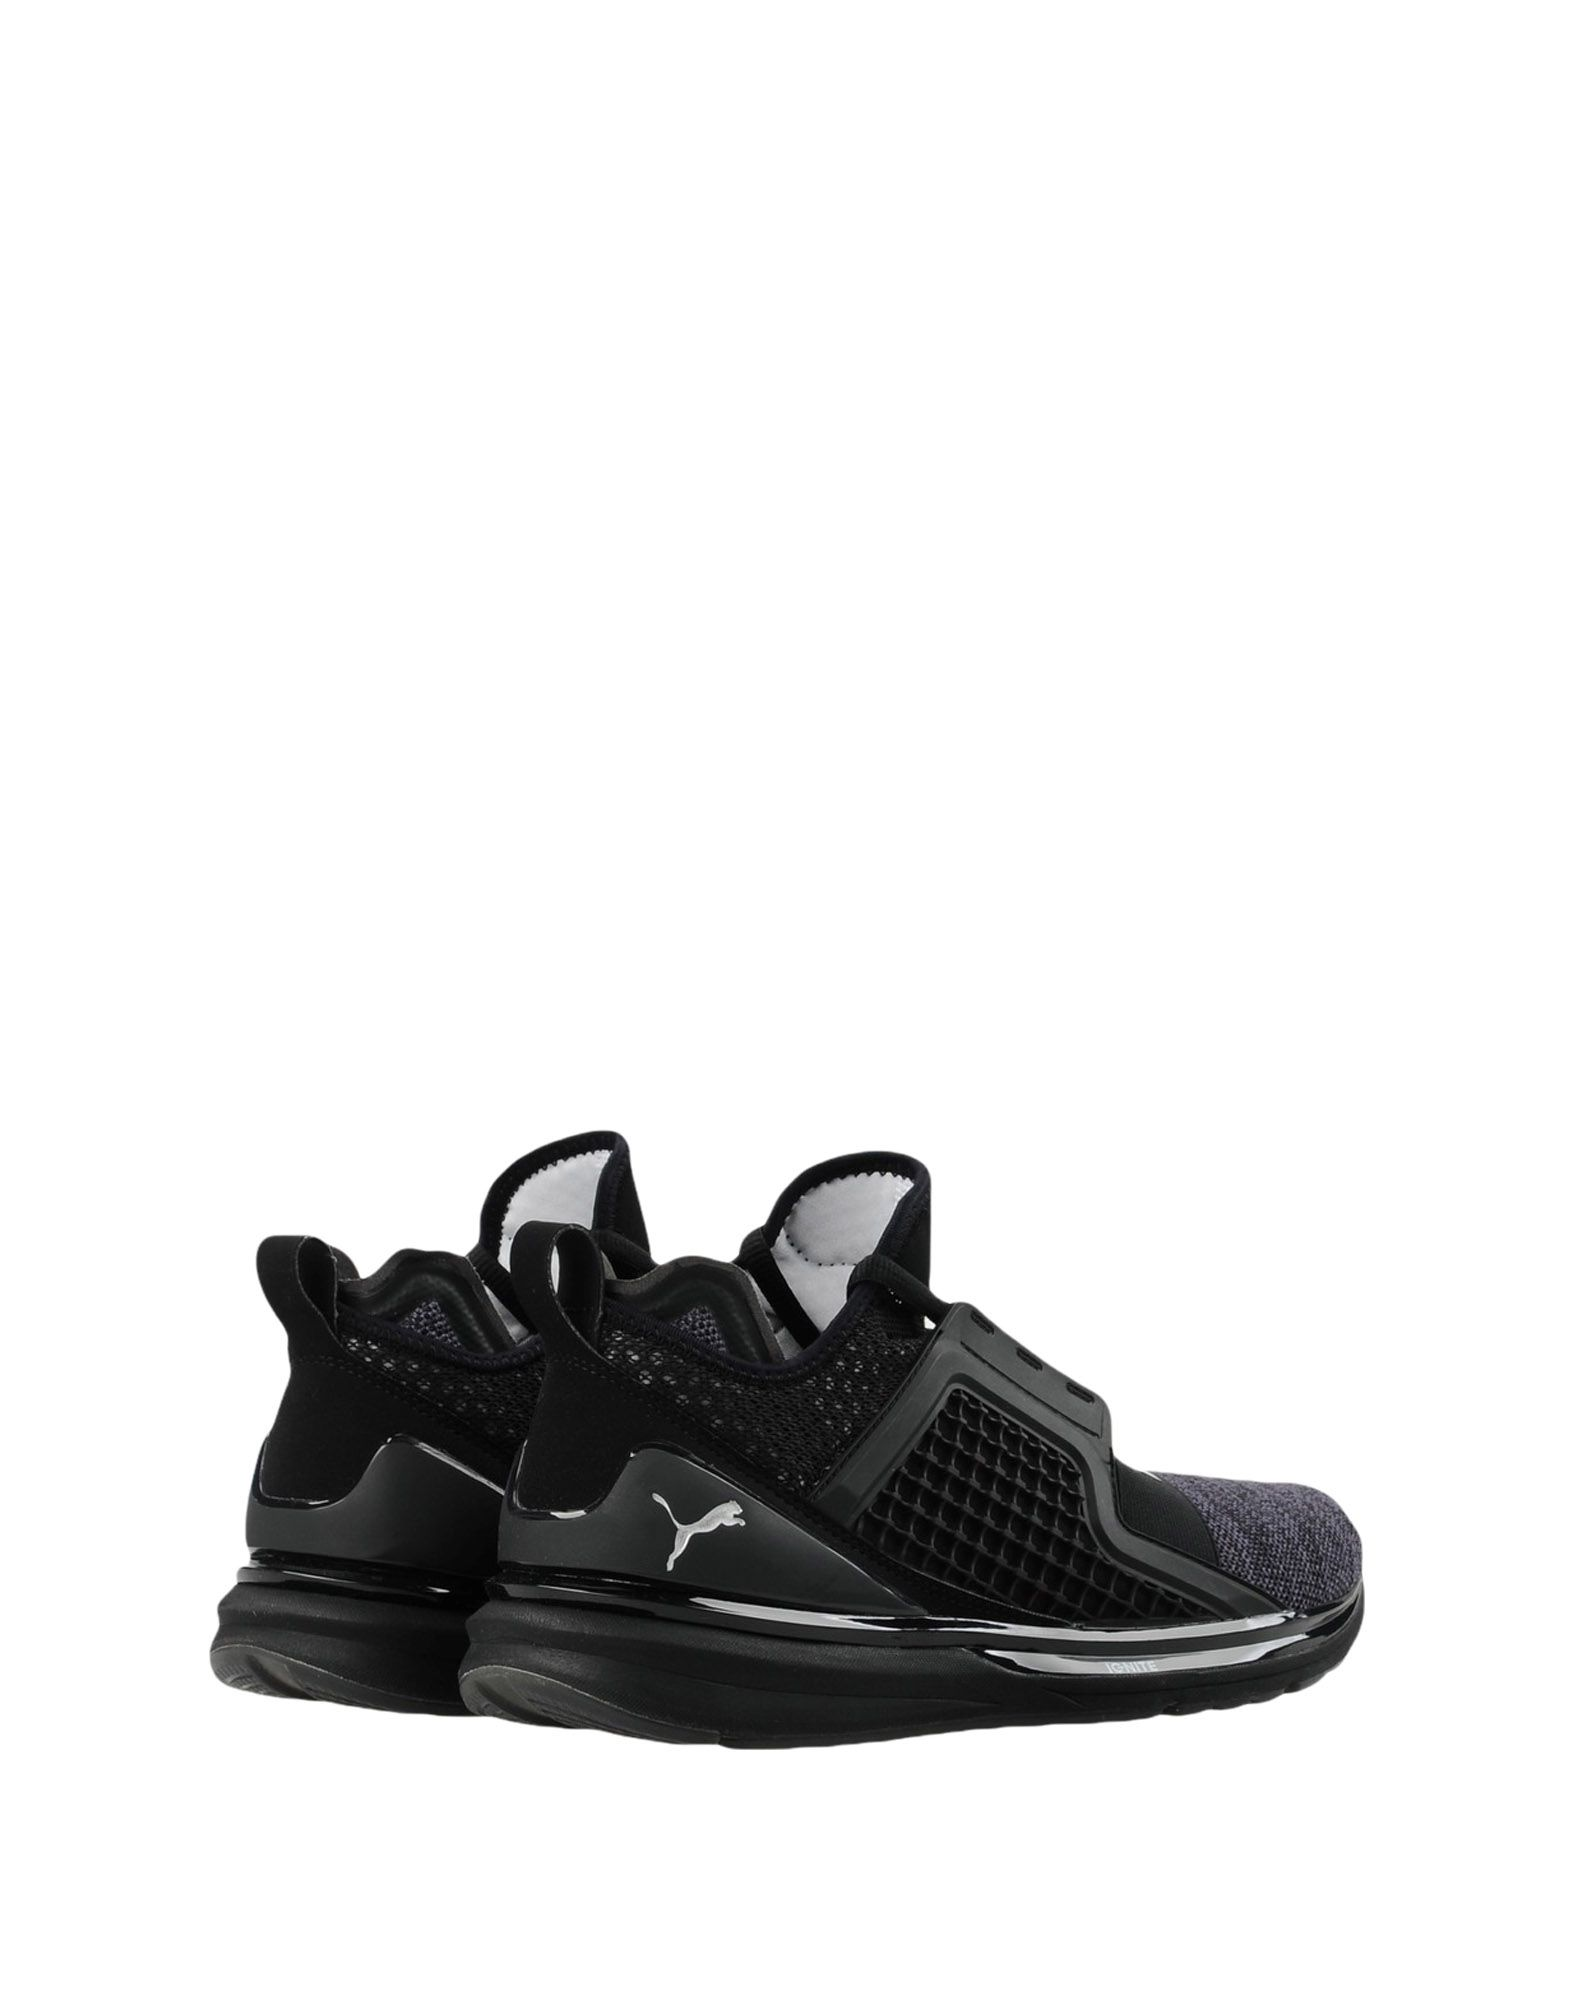 Knit Ignite Homme Puma Sneakers Limitless Yq1nFq8WH